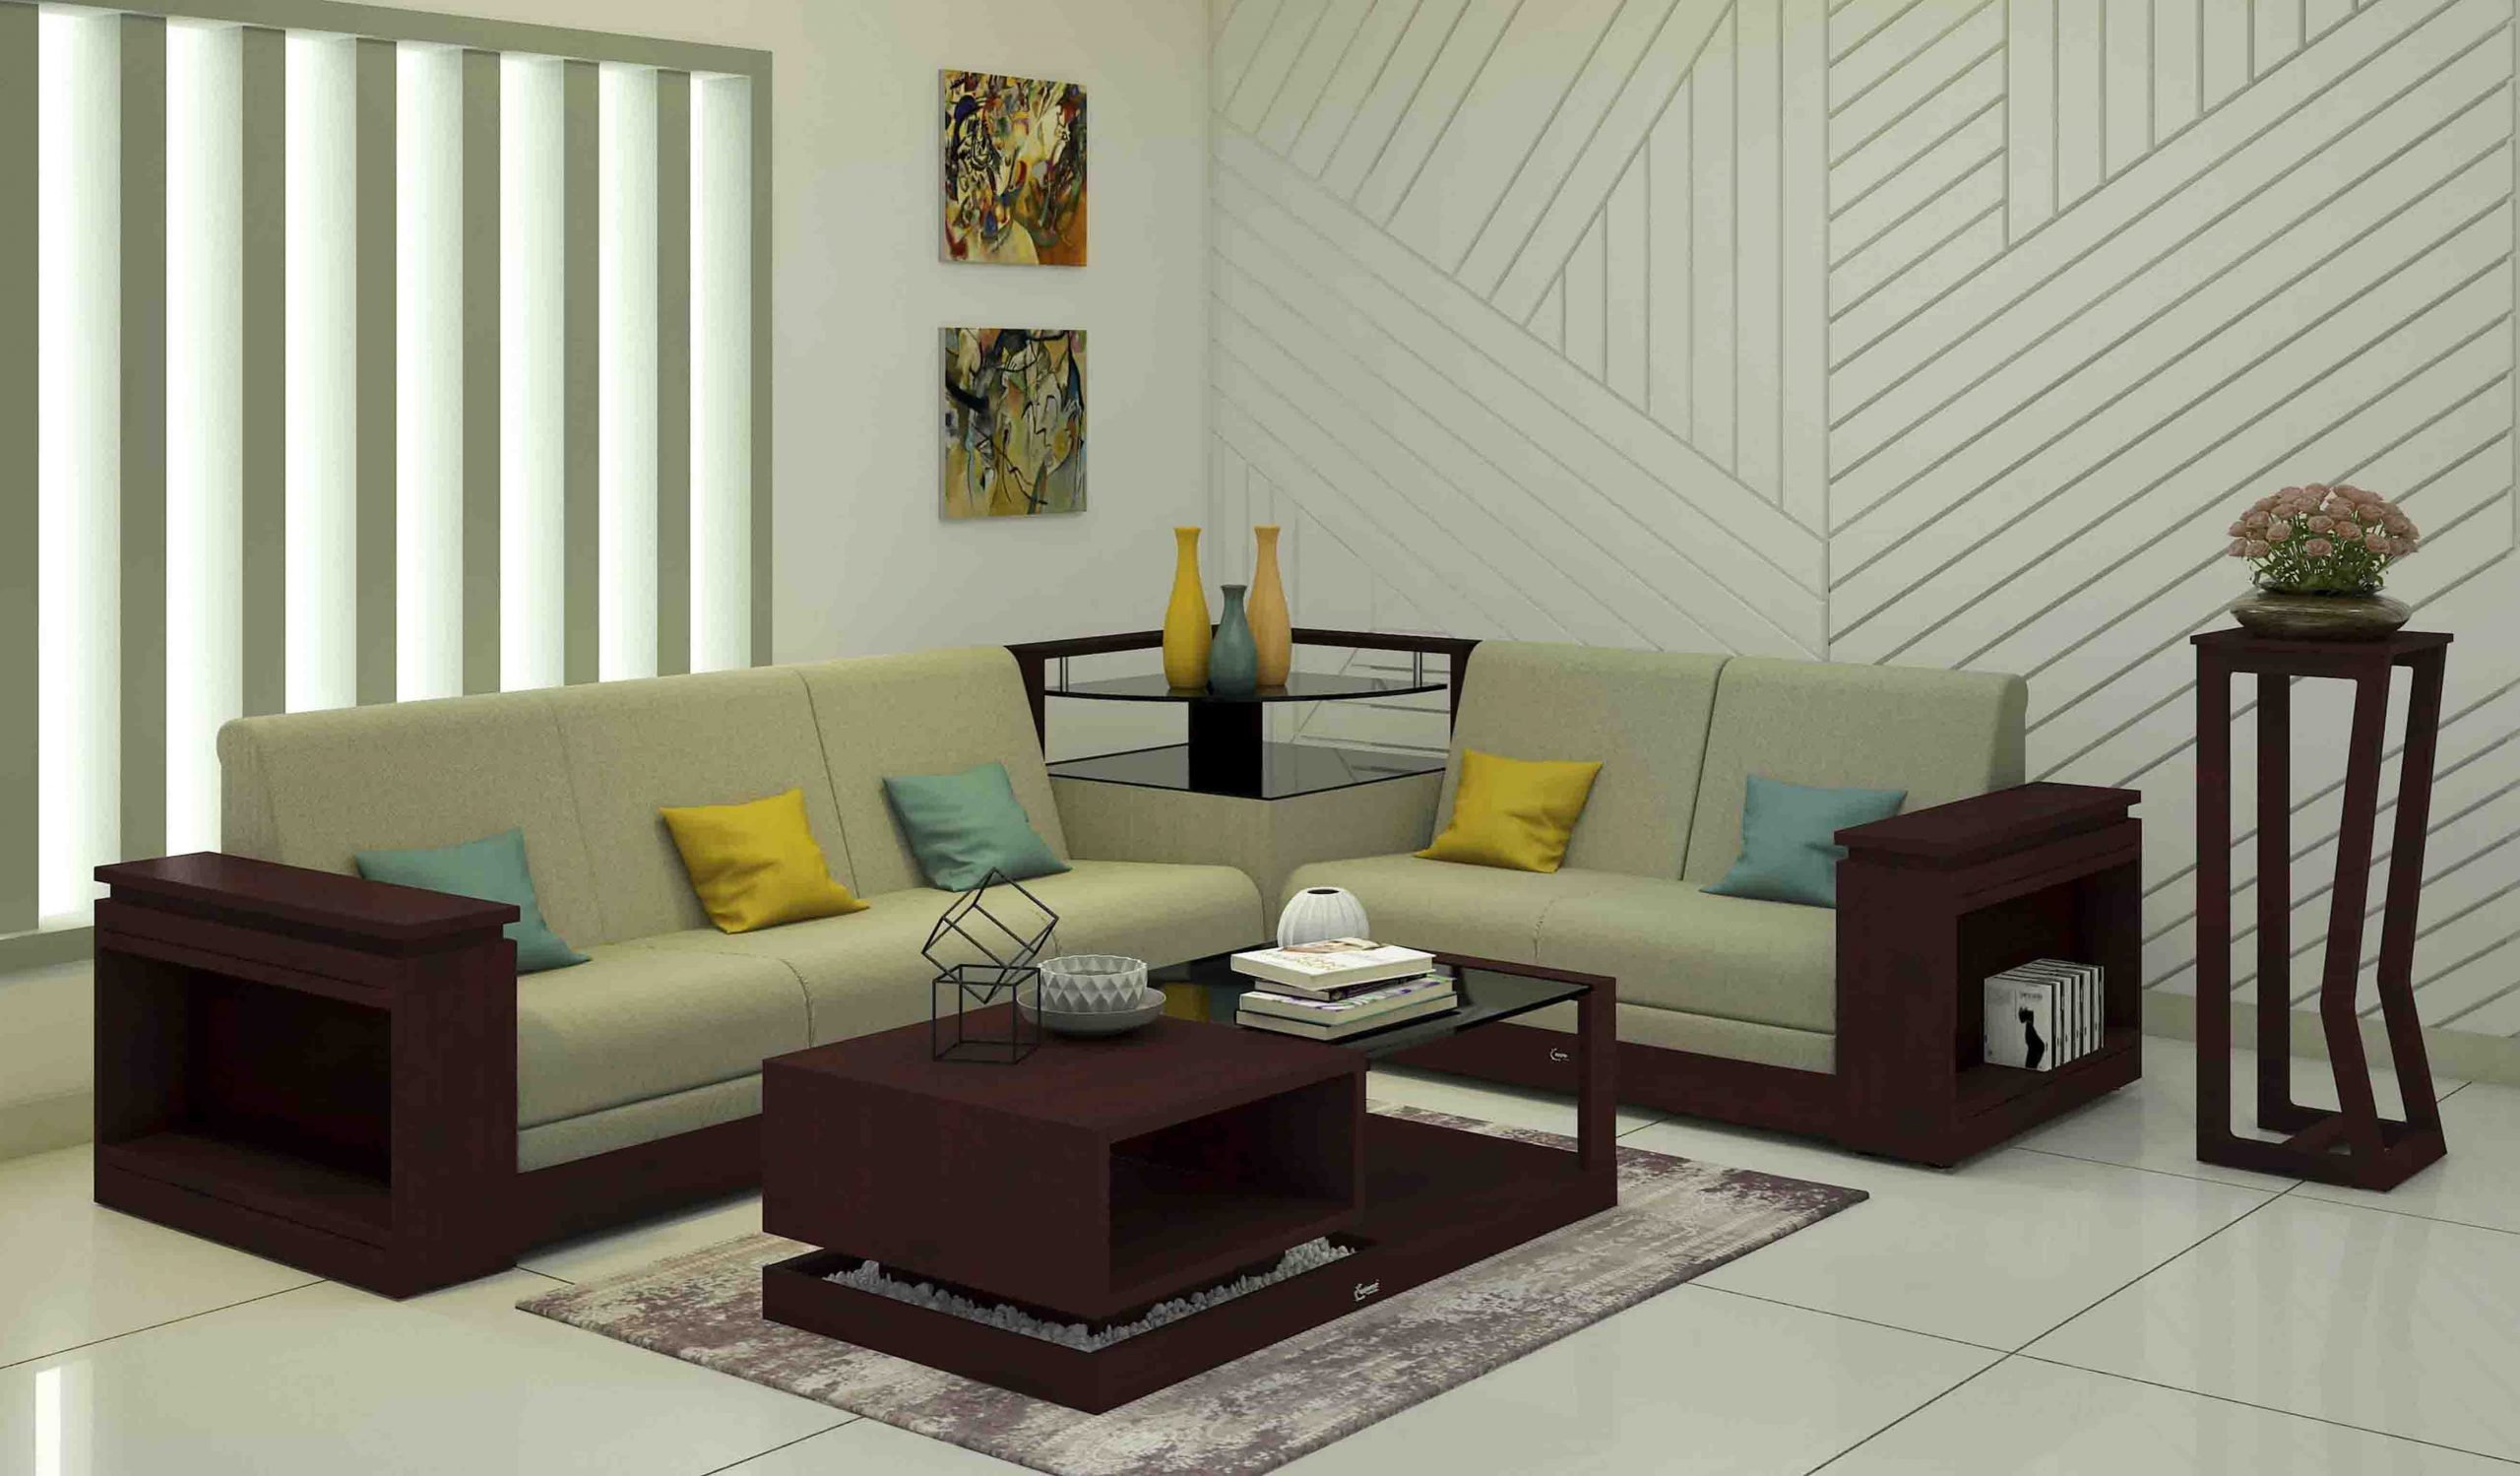 New arrivals of furniture products-min-min